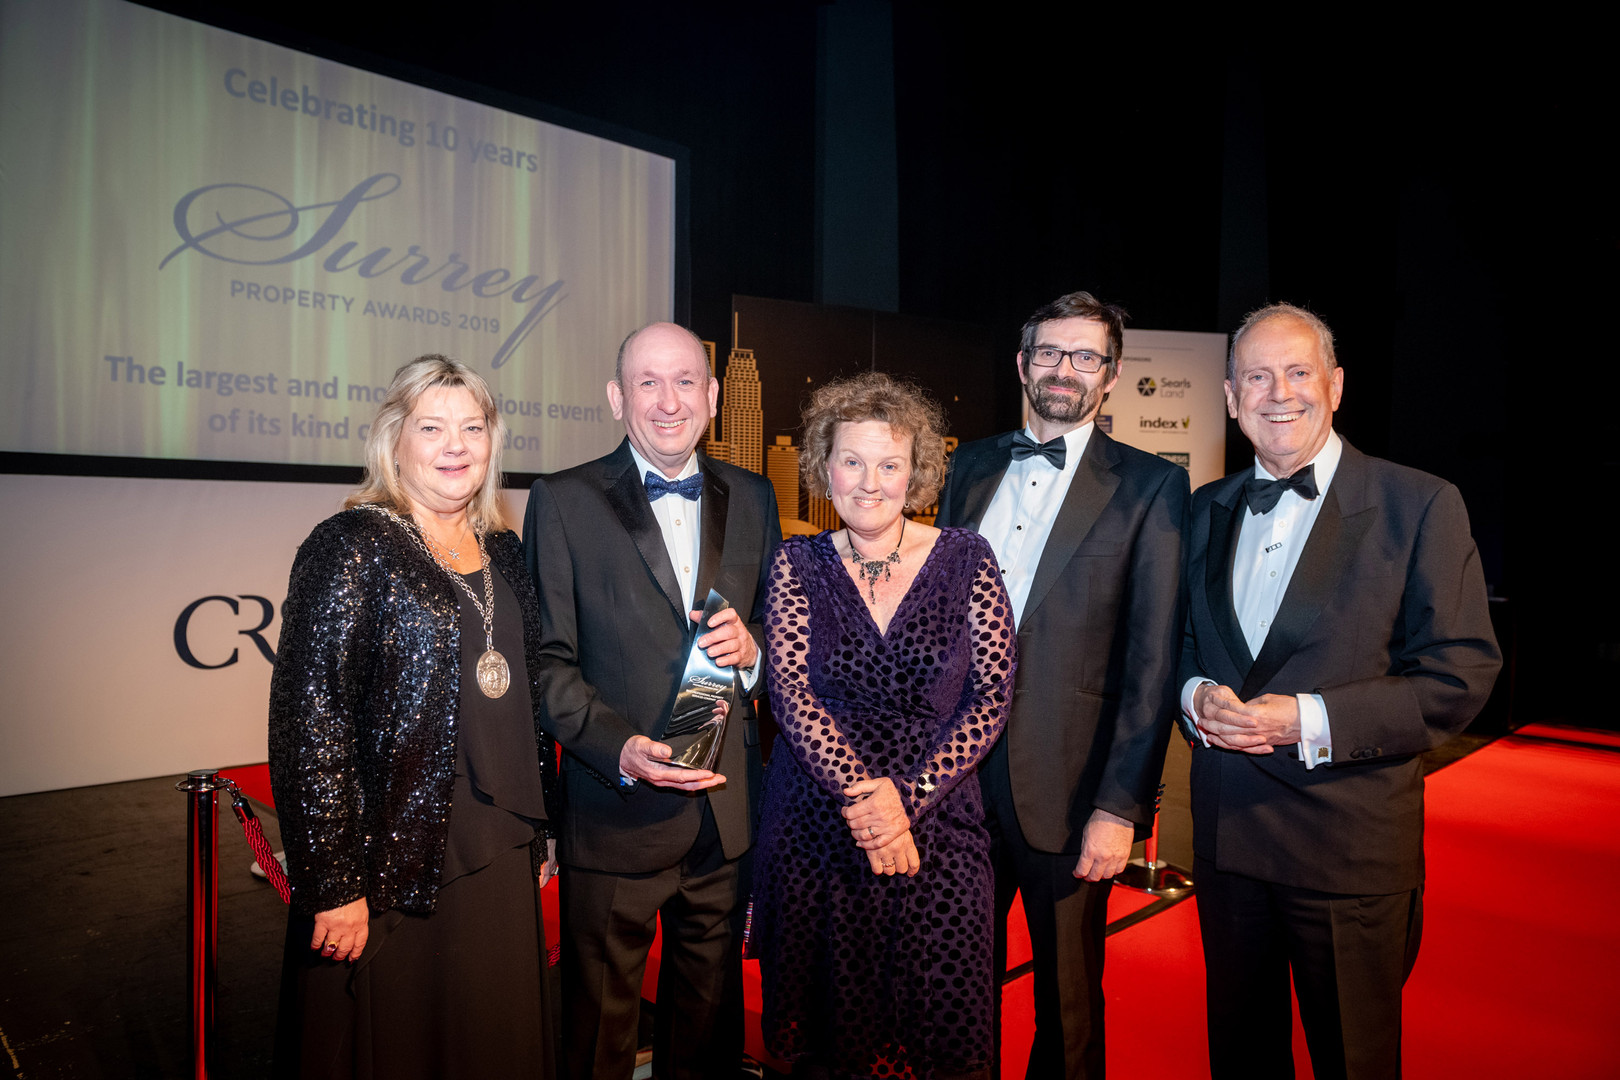 SurreyPropertyAwards_Nov2019_381.jpg